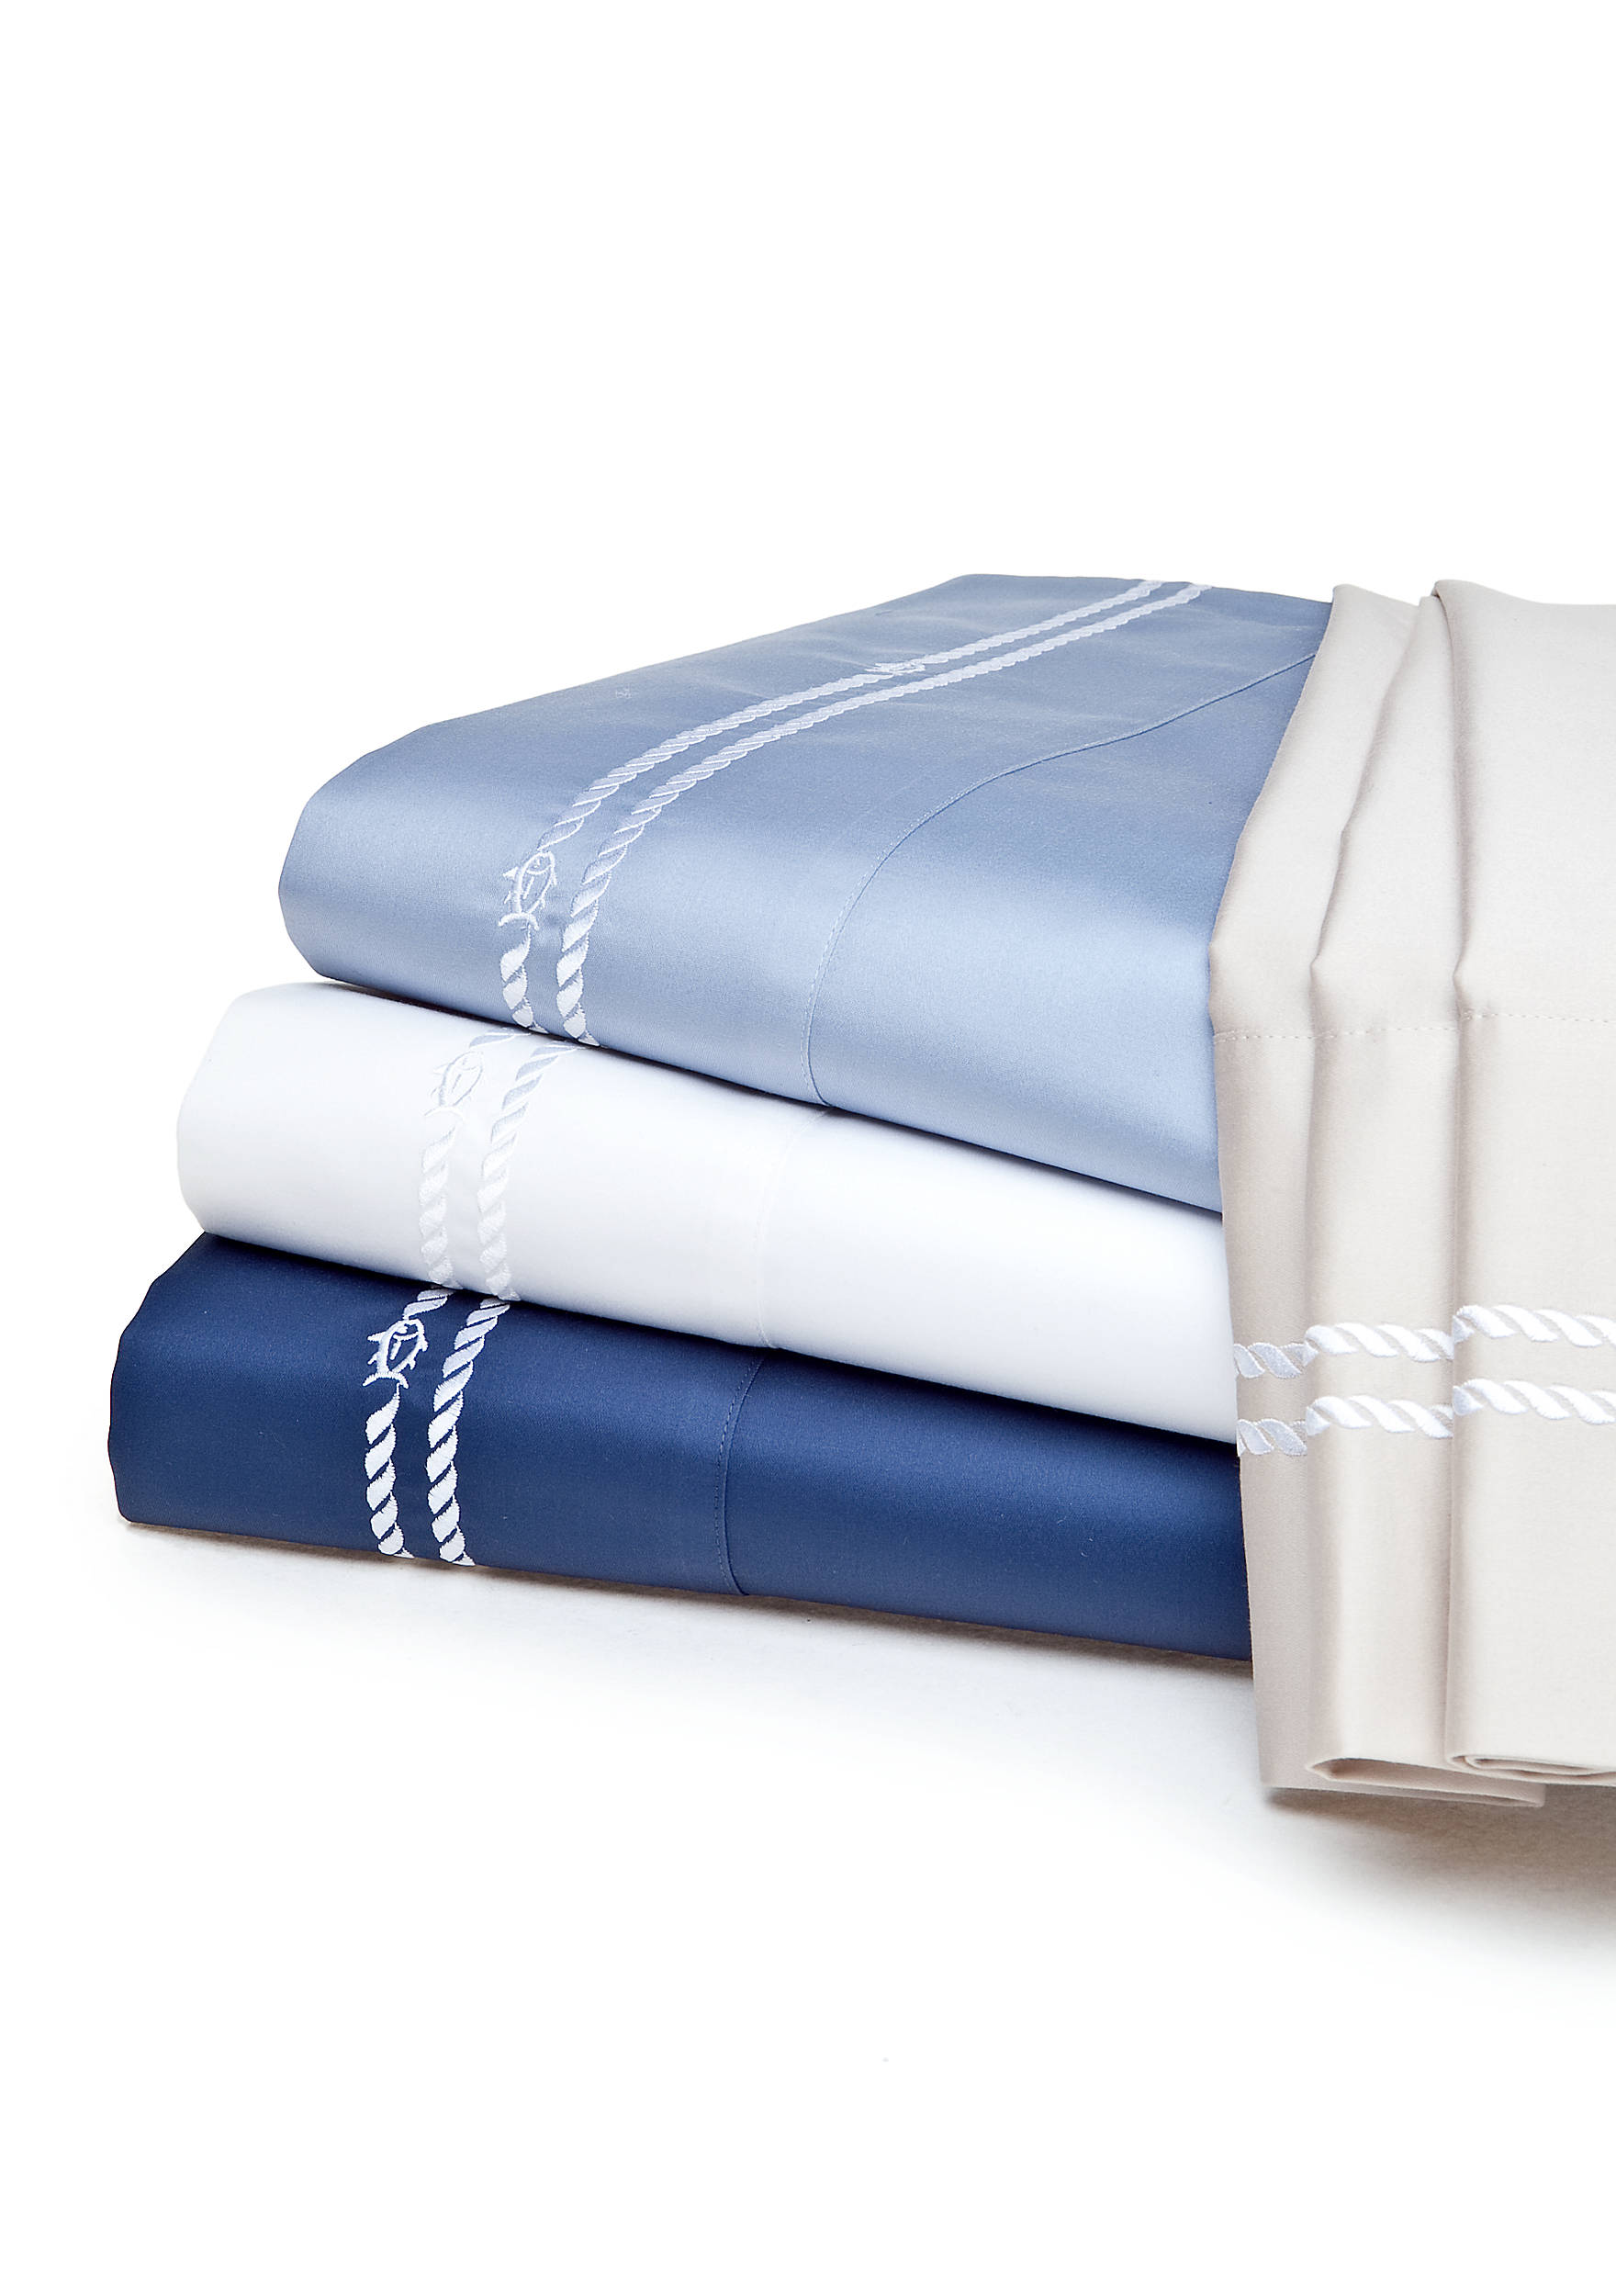 bed comforter collection miller stripe queen southern hospitality tide of grey sheets bone maxx collector tj cabana at full nicole simple real sale williamsburg sets bedding home size